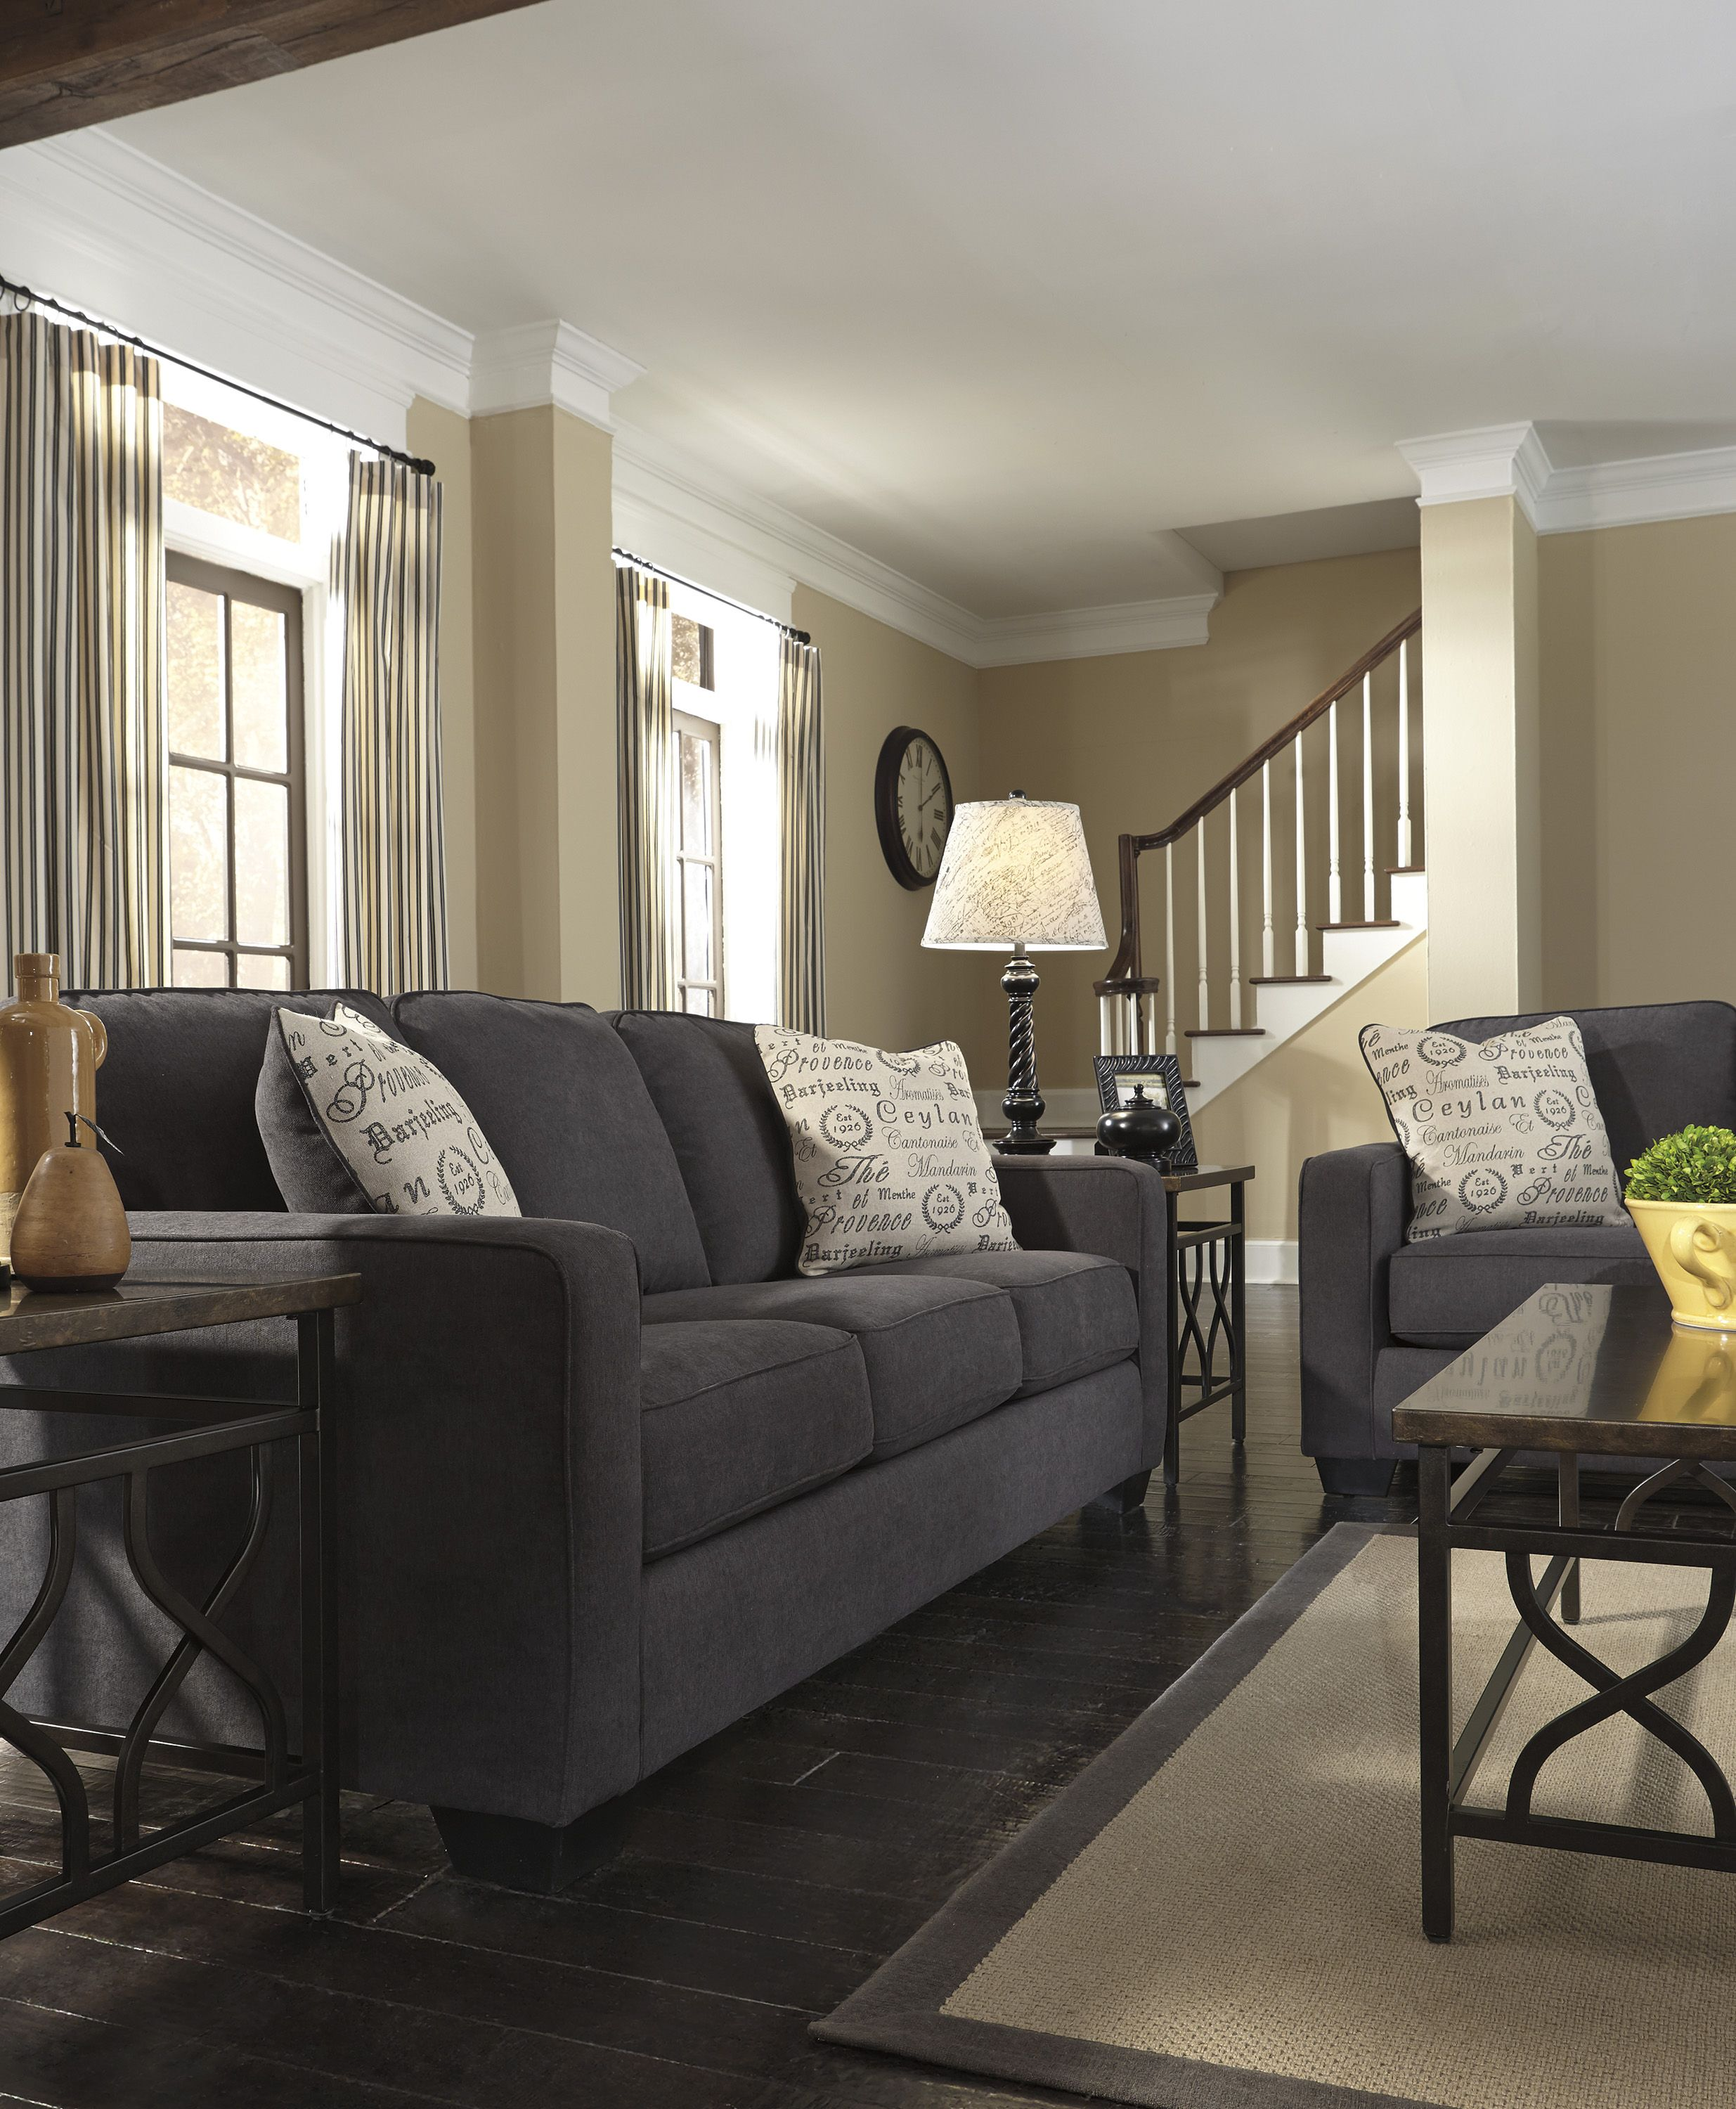 1000 Ideas About Charcoal Couch On Pinterest: #AlenyaCharcoal #LivingRoom